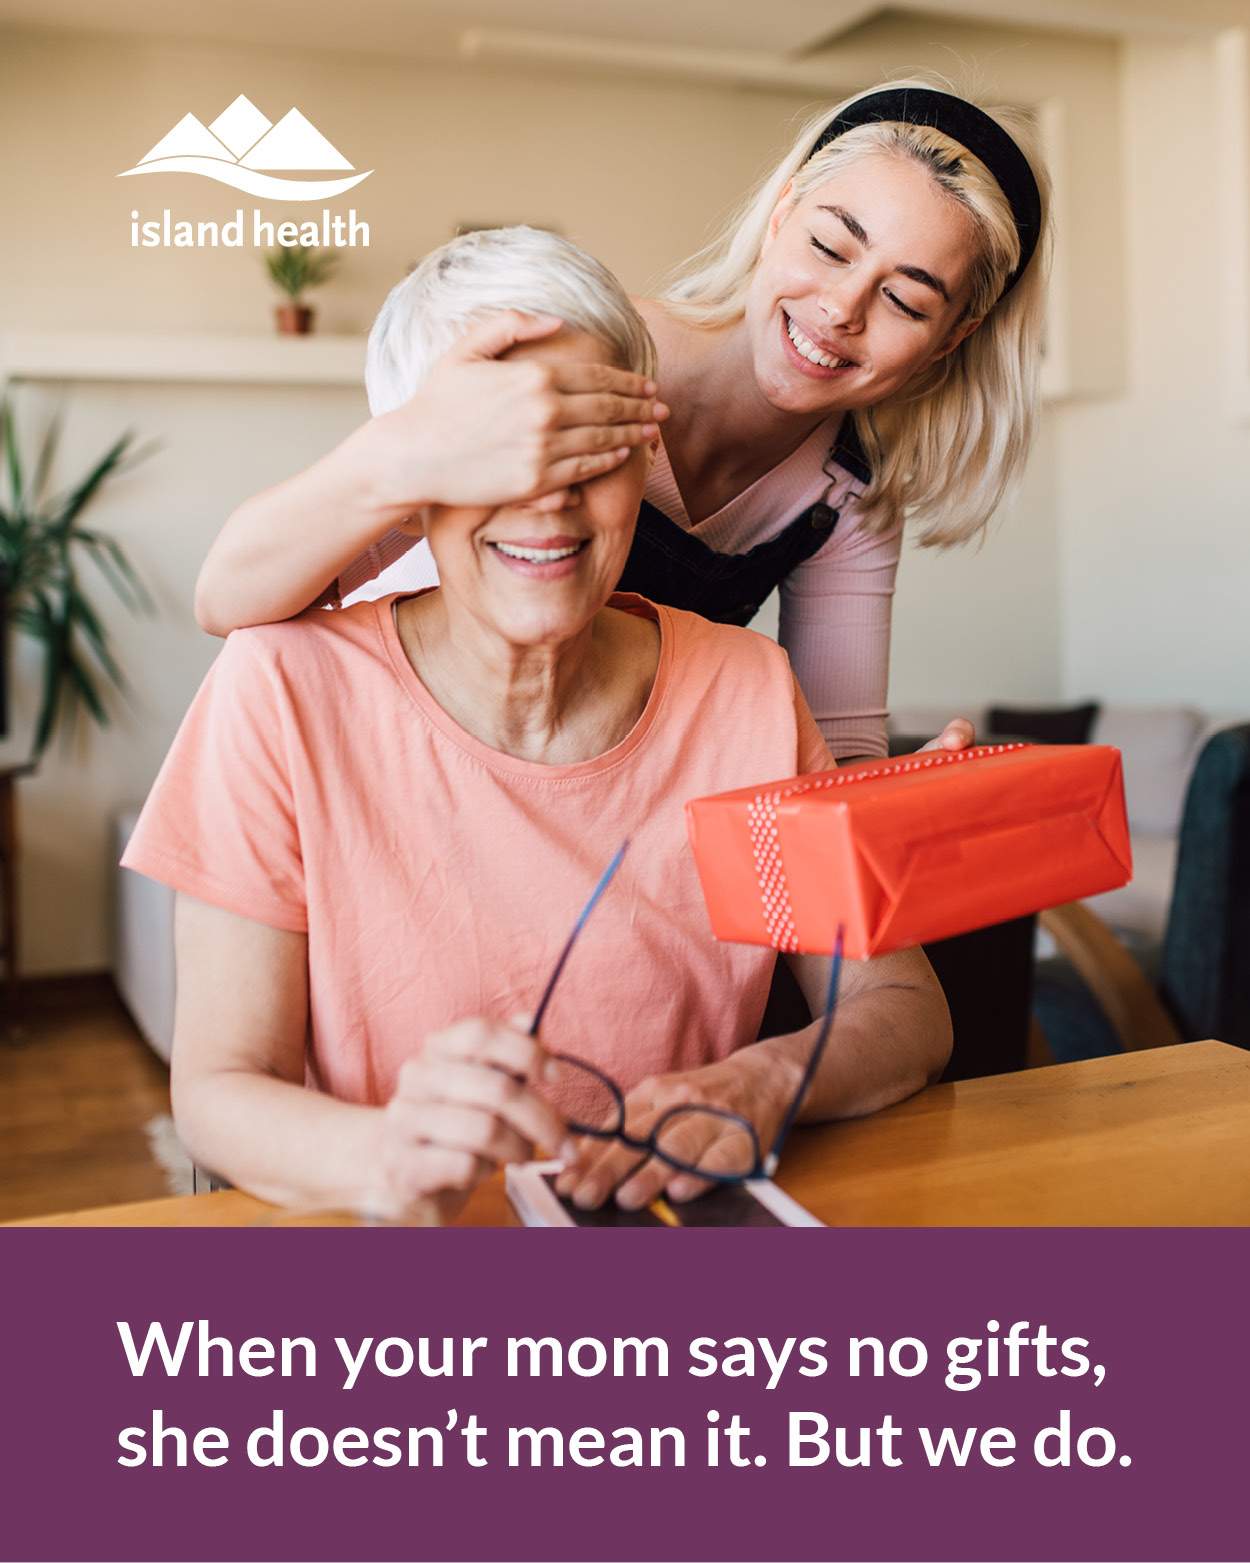 ins-Mom-says-no-gifts4.jpg